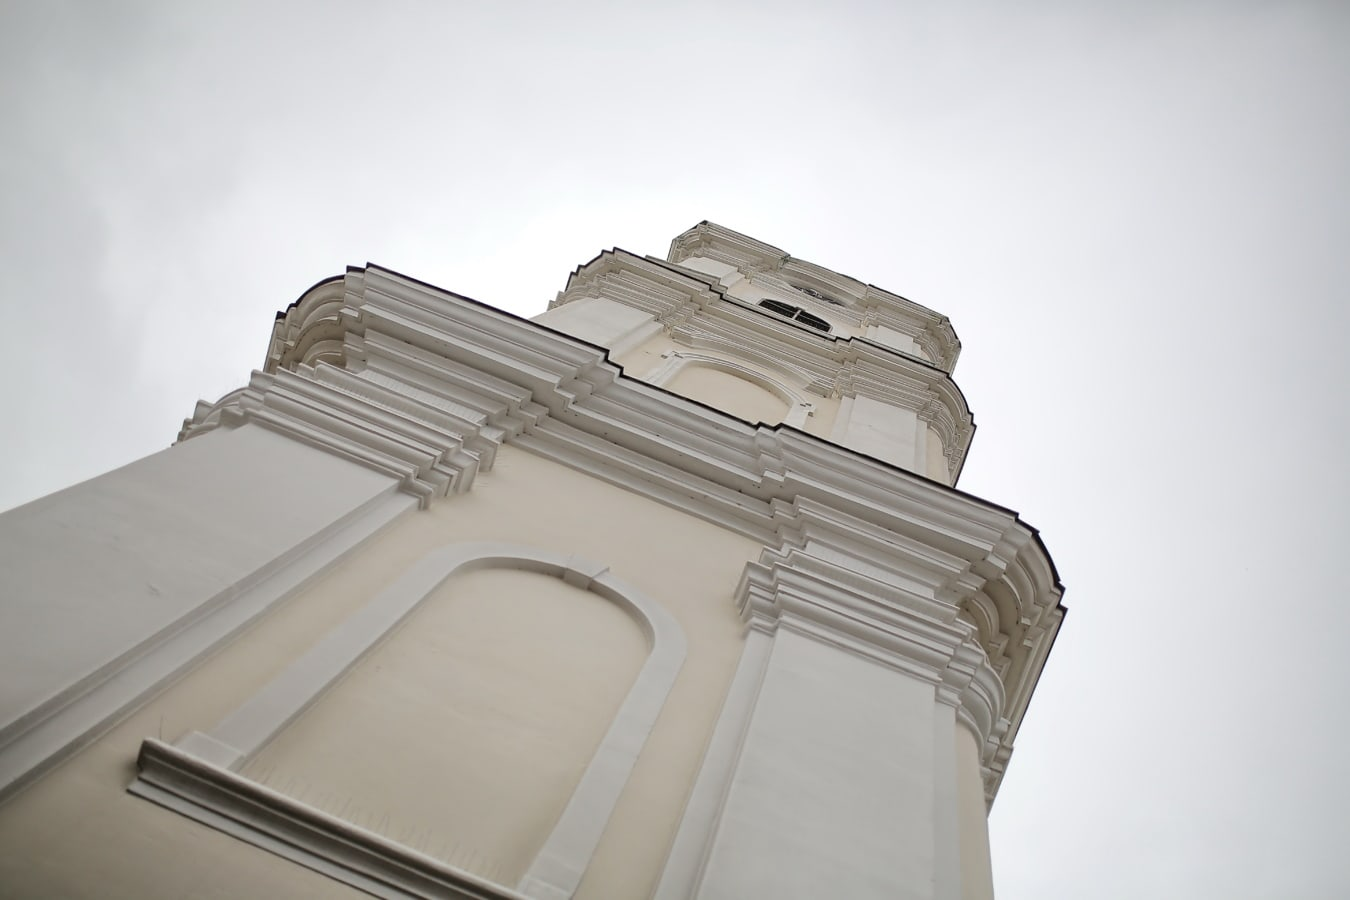 Russe, steeple, style architectural, orthodoxe, Tall, Création de, architecture, art, Église, Ville